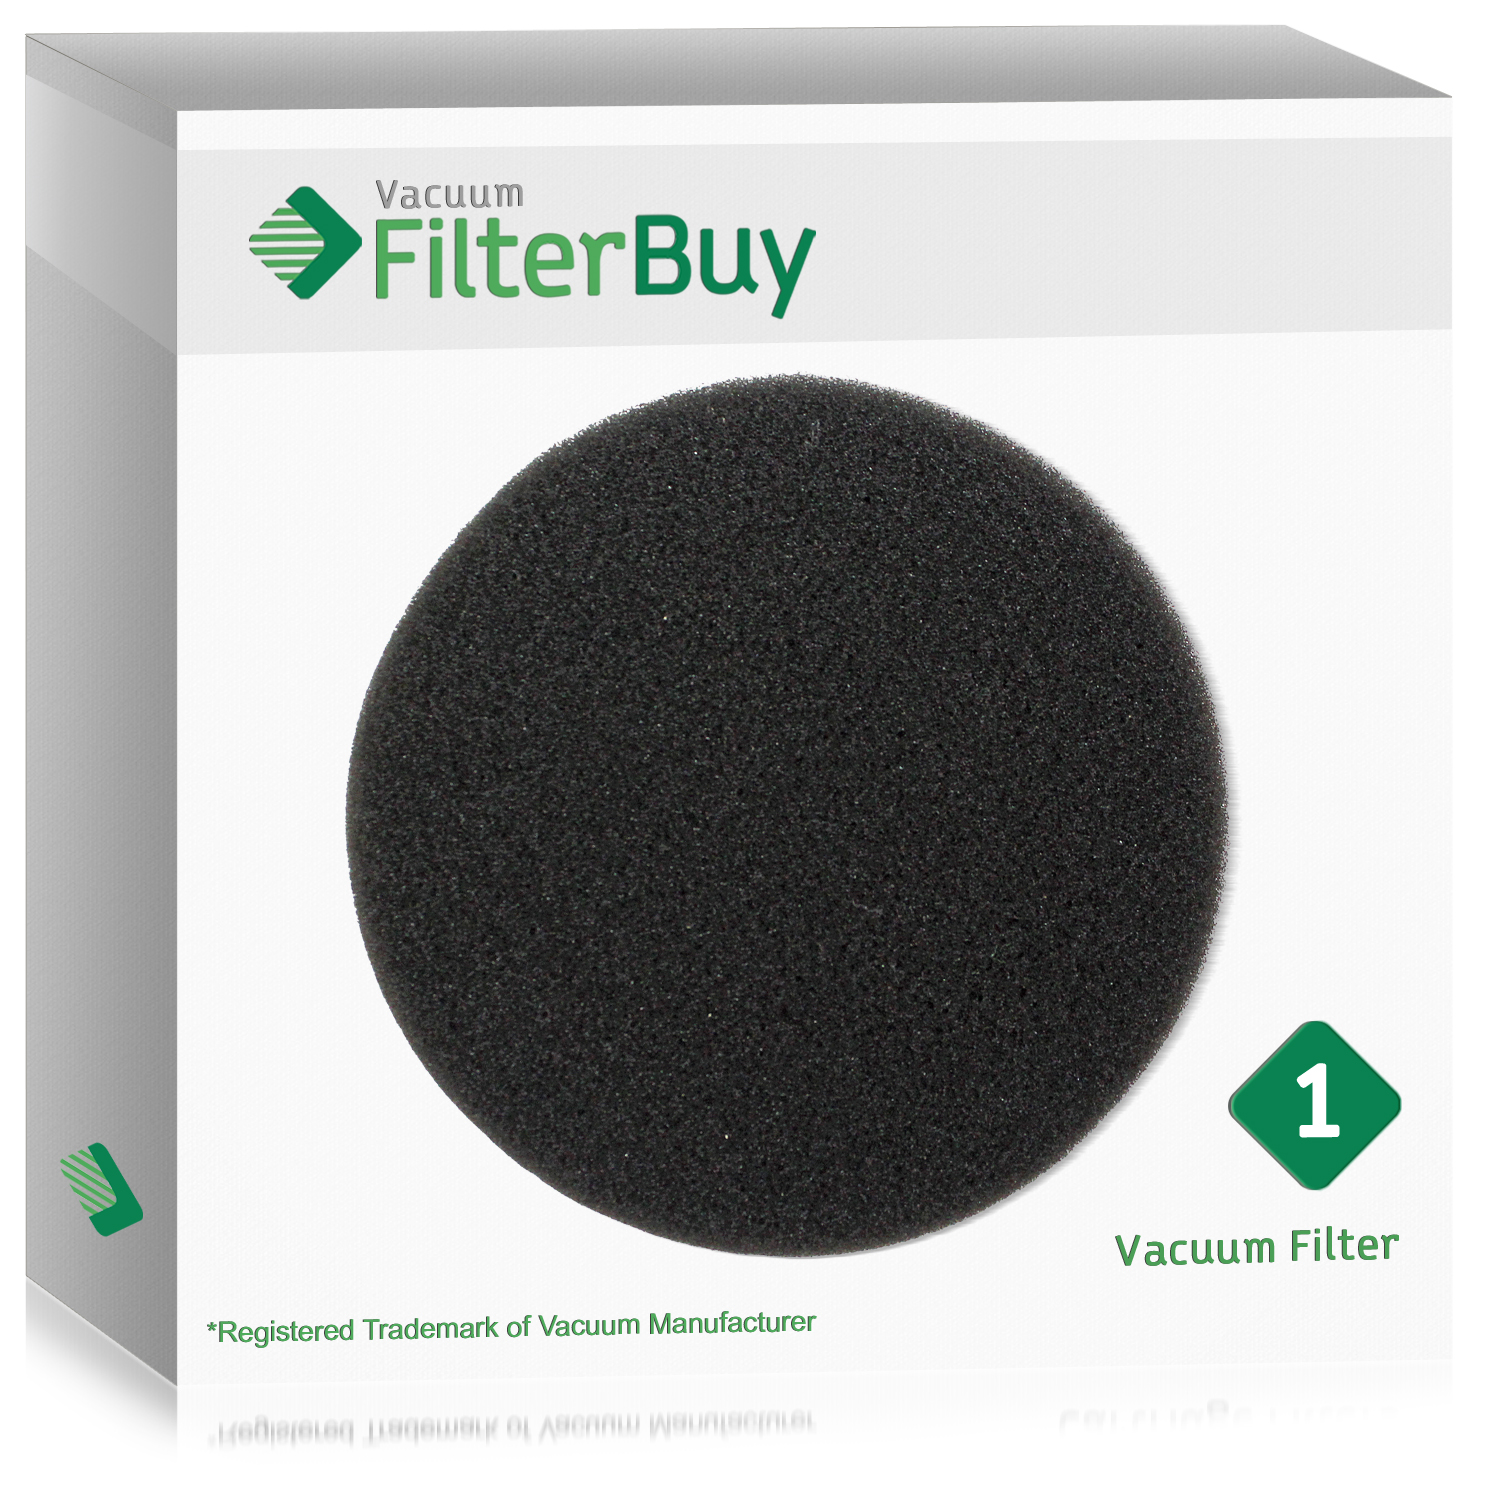 Eureka DCF-26 (DCF26) Filter, Part # 68465a & 68465.  Designed by FilterBuy to fit Eureka AirSpeed Upright Vacuum Cleaners.